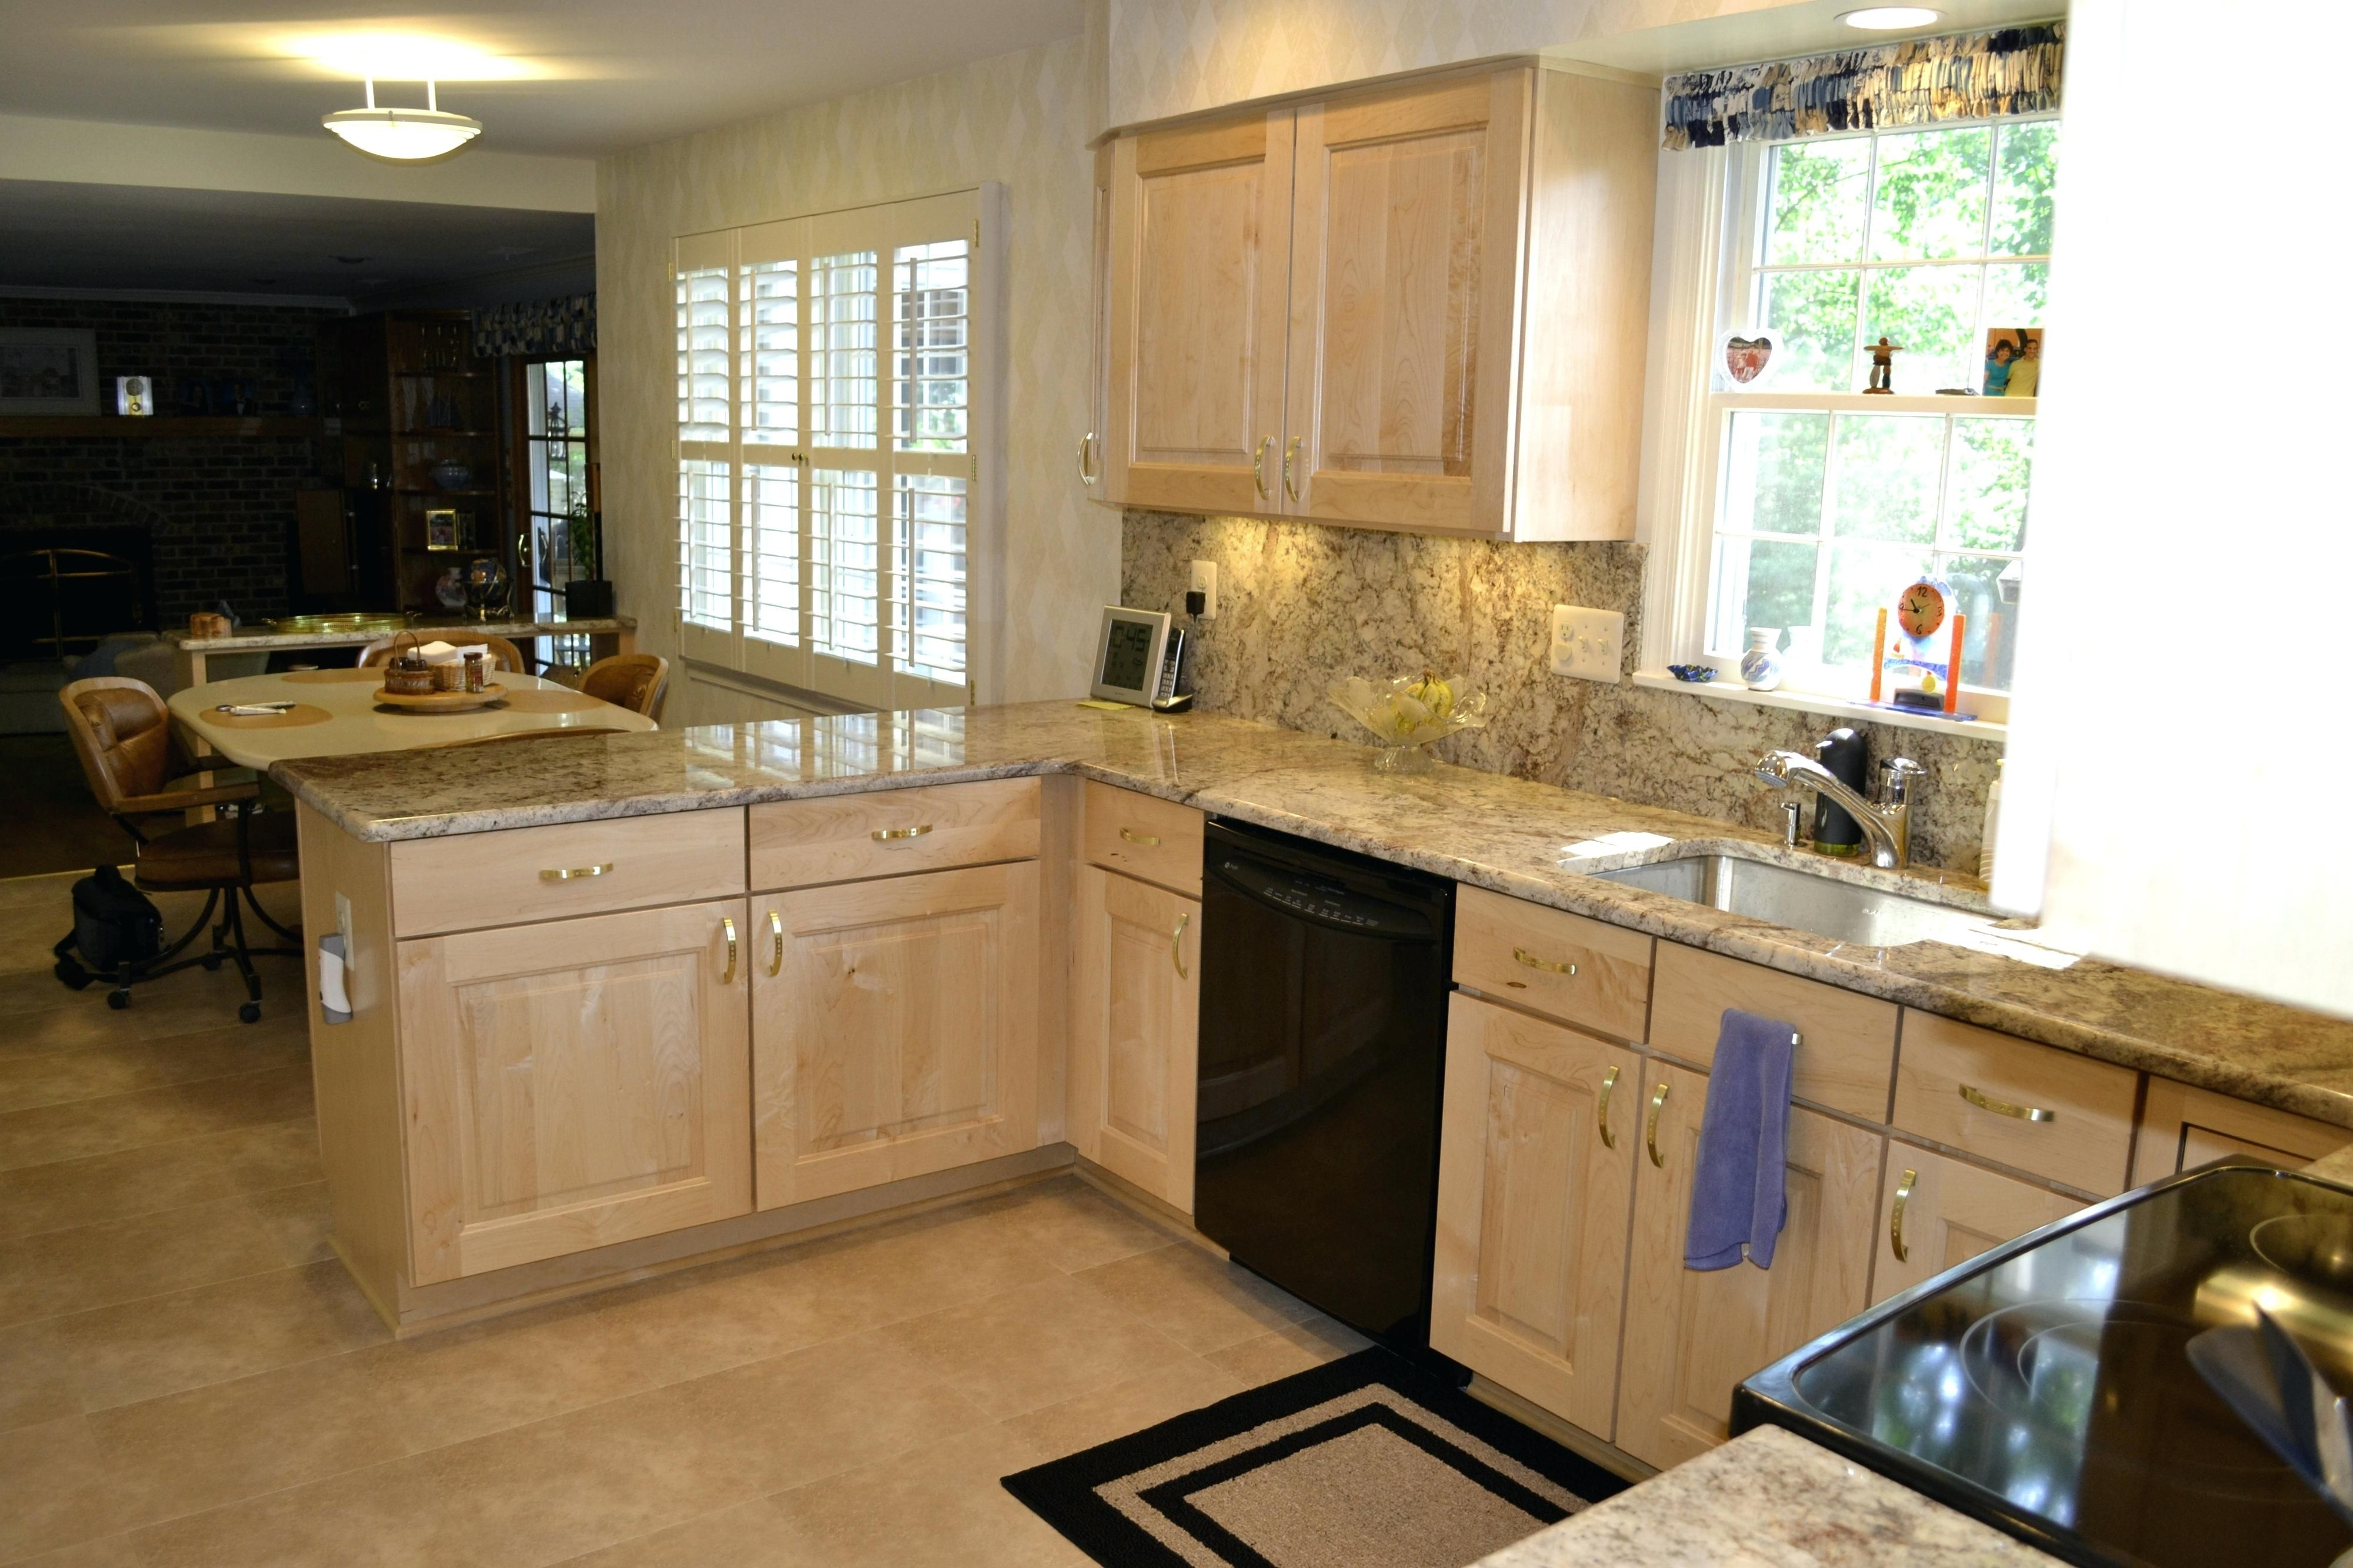 ideas floor x flooring cabinets for kitchen remodeling options tile with inspire tiles best white